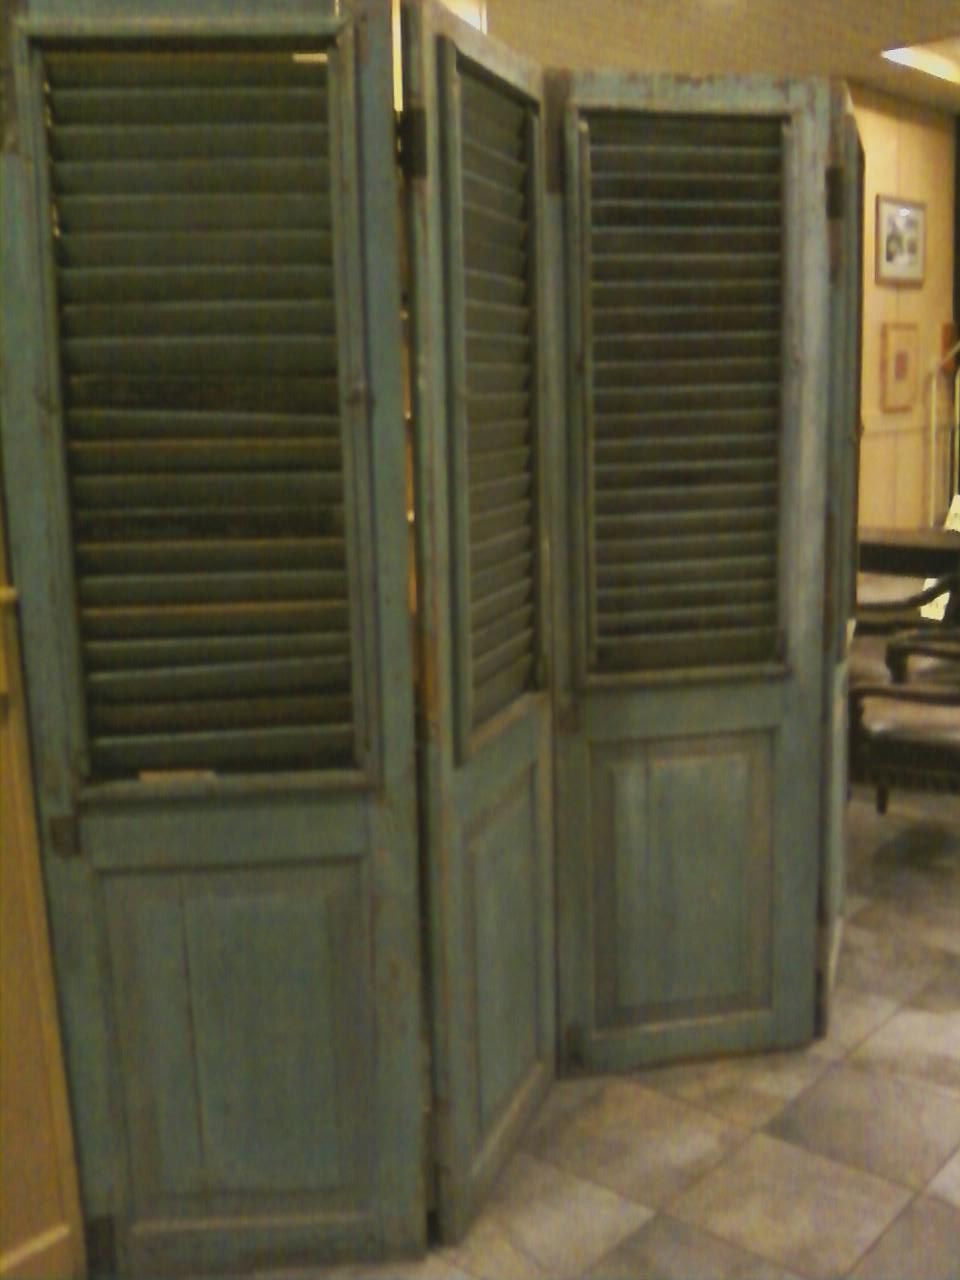 I Saw This At A Ritzy Hotel Old Door Shutters Were Re